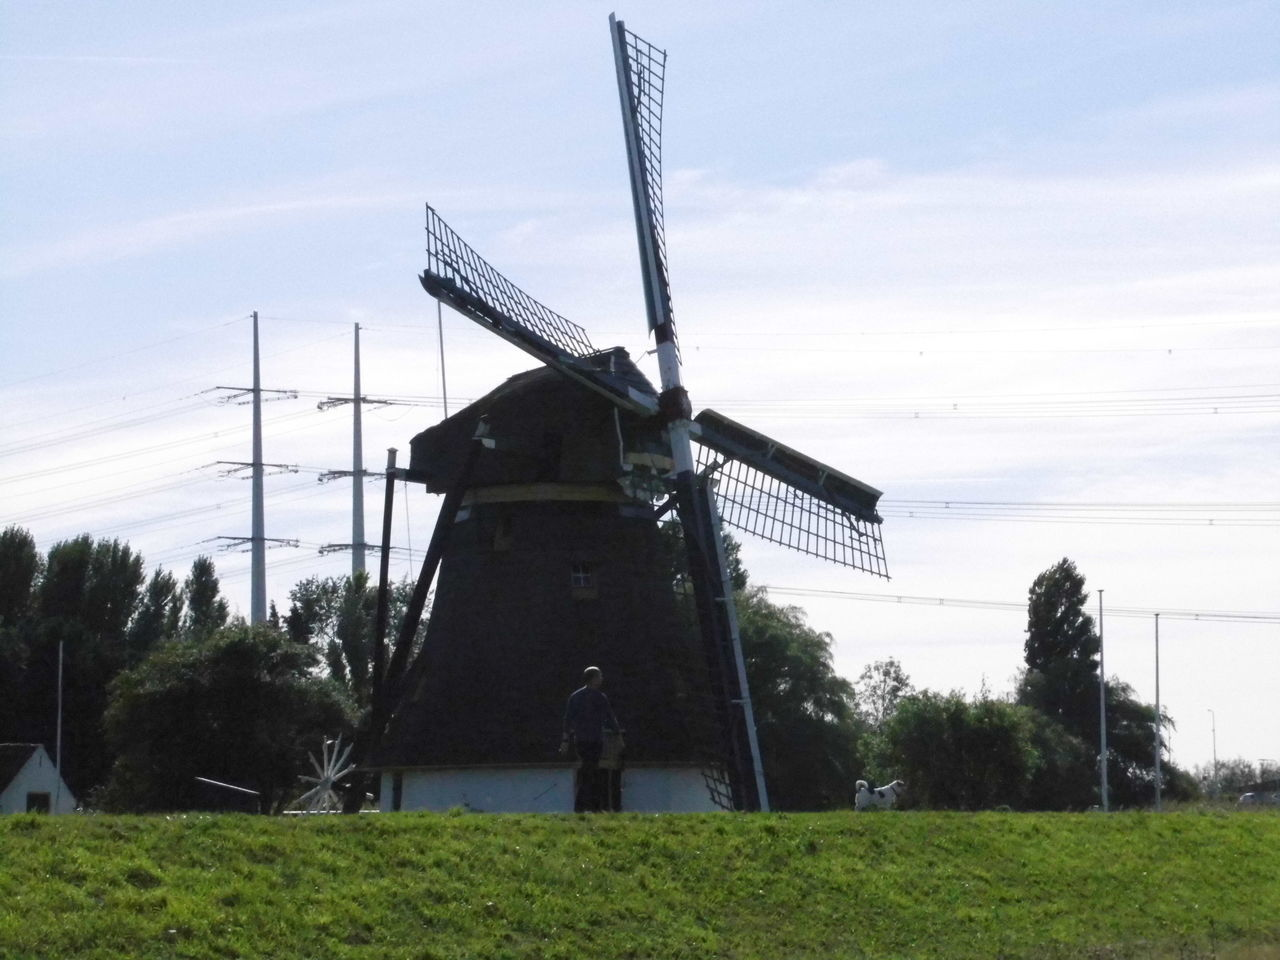 alternative energy, wind power, renewable energy, wind turbine, windmill, environmental conservation, fuel and power generation, traditional windmill, field, tree, sky, grass, industrial windmill, technology, no people, day, outdoors, nature, architecture